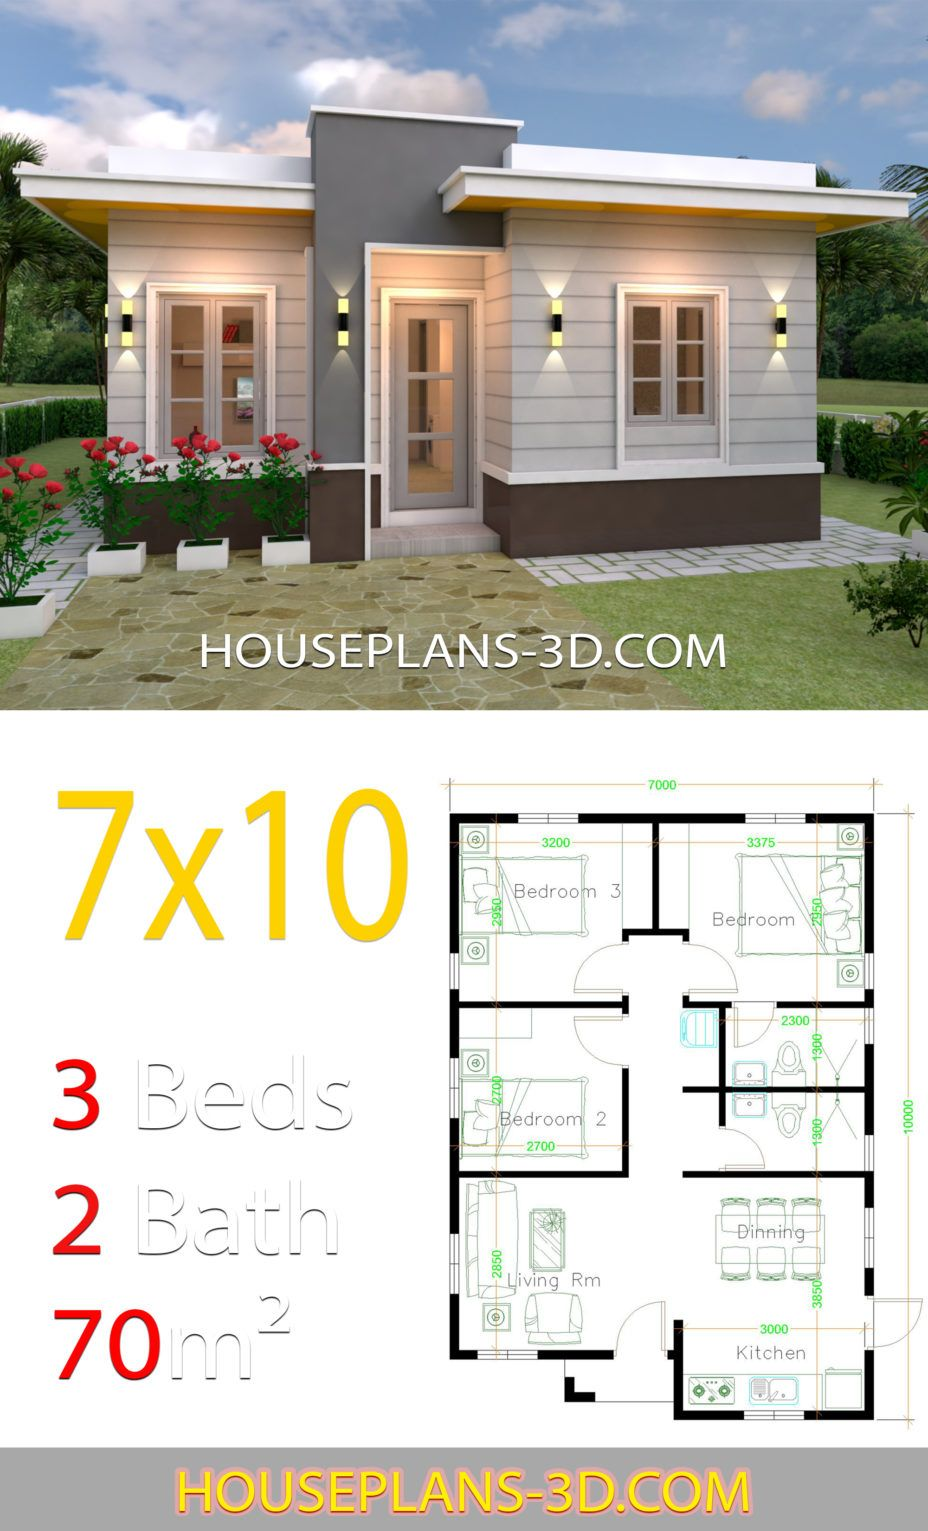 House Design 7x10 With 3 Bedrooms Terrace Roof House Plans 3d In 2020 House Plans Flat Roof House Small House Design Plans